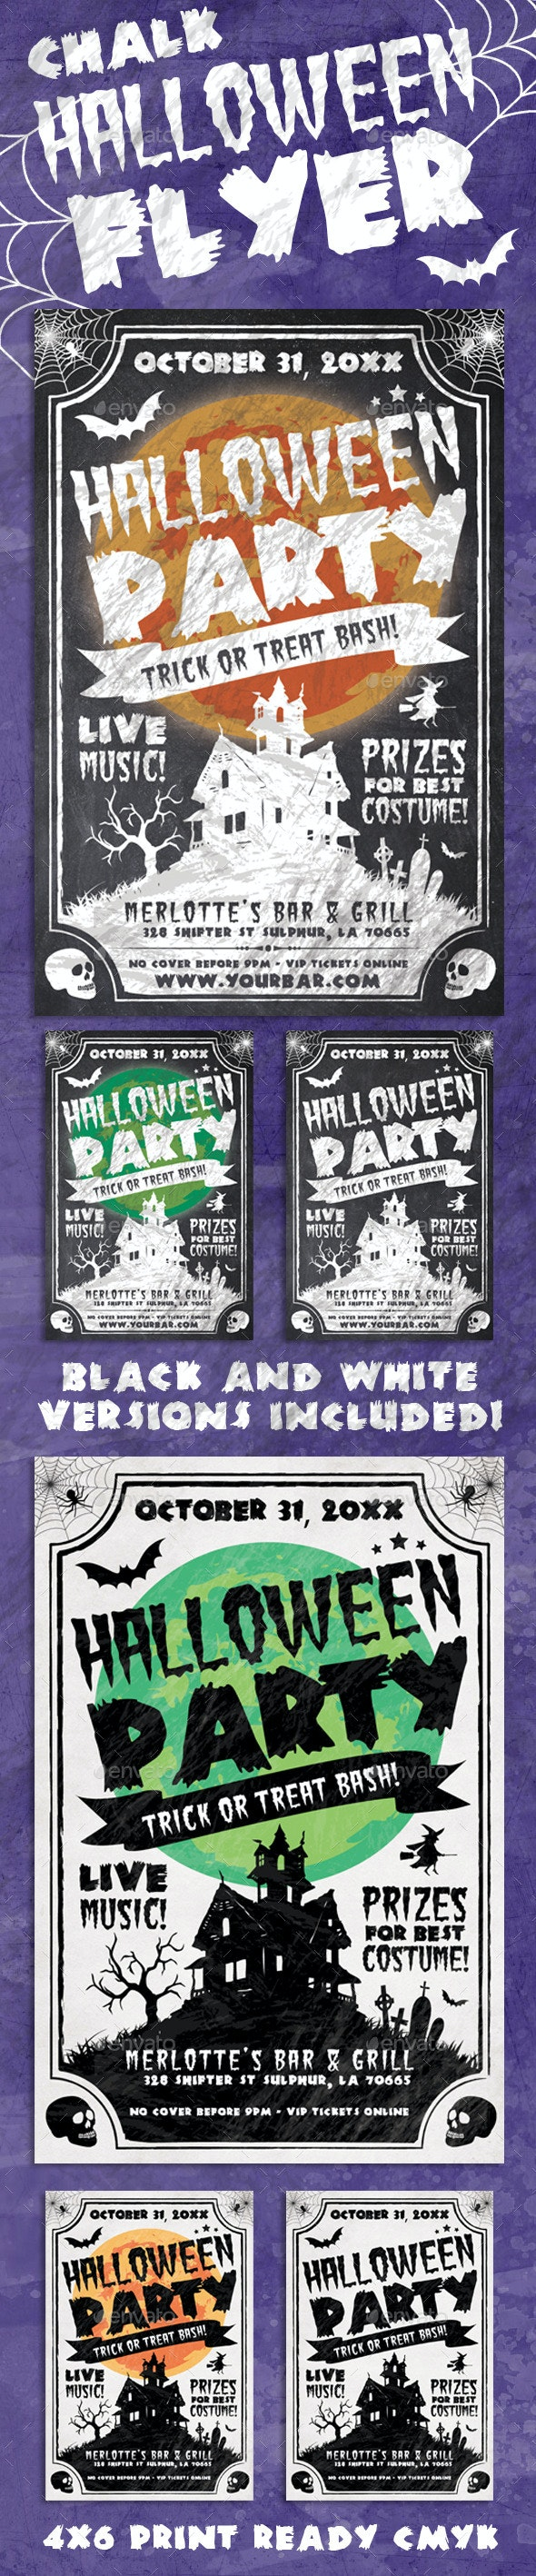 Chalk Halloween Flyer - Events Flyers